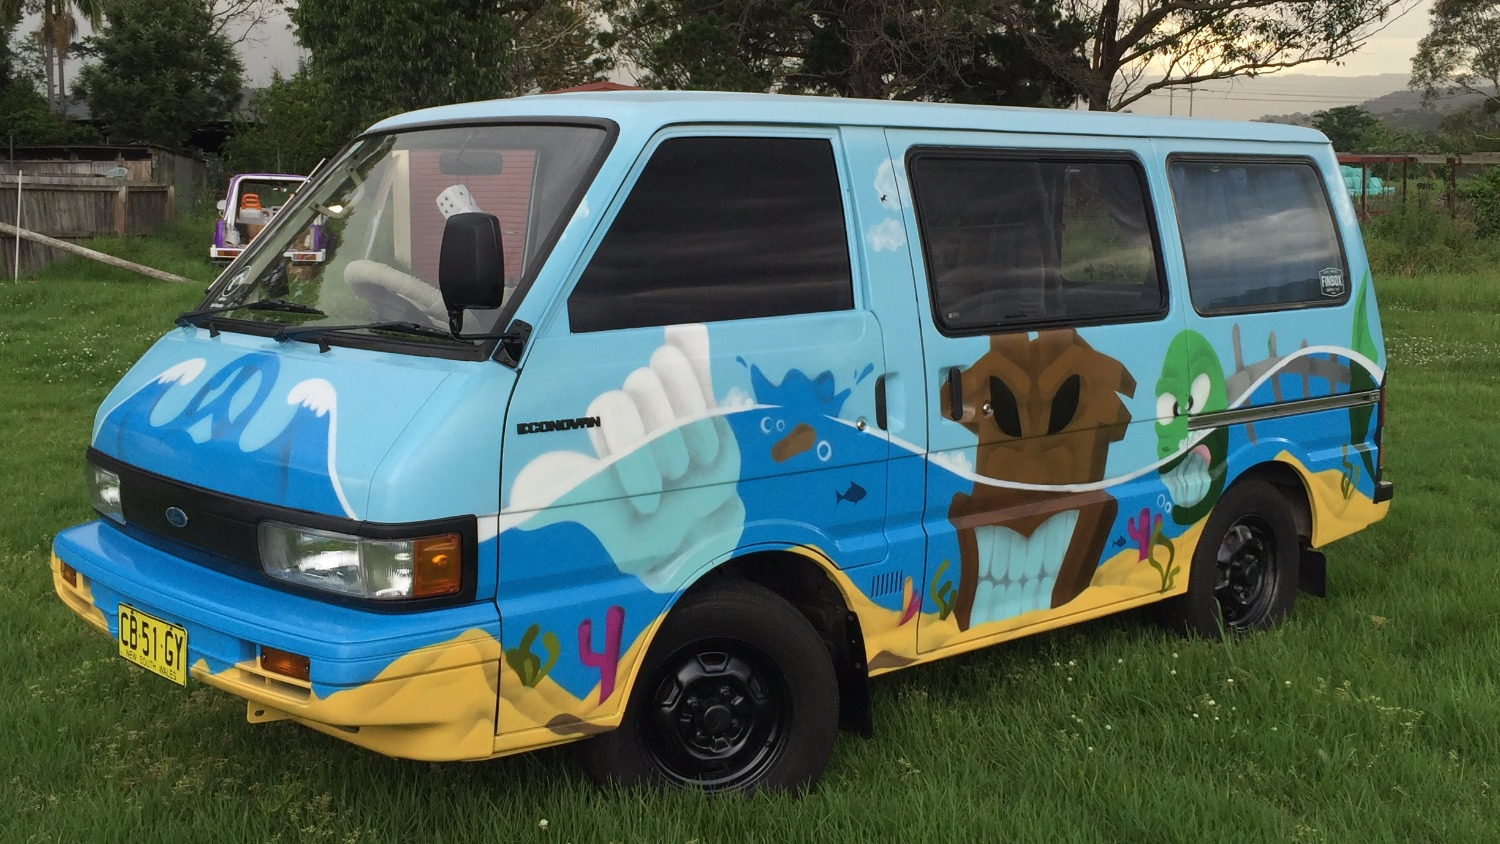 Underwater themed mural on van